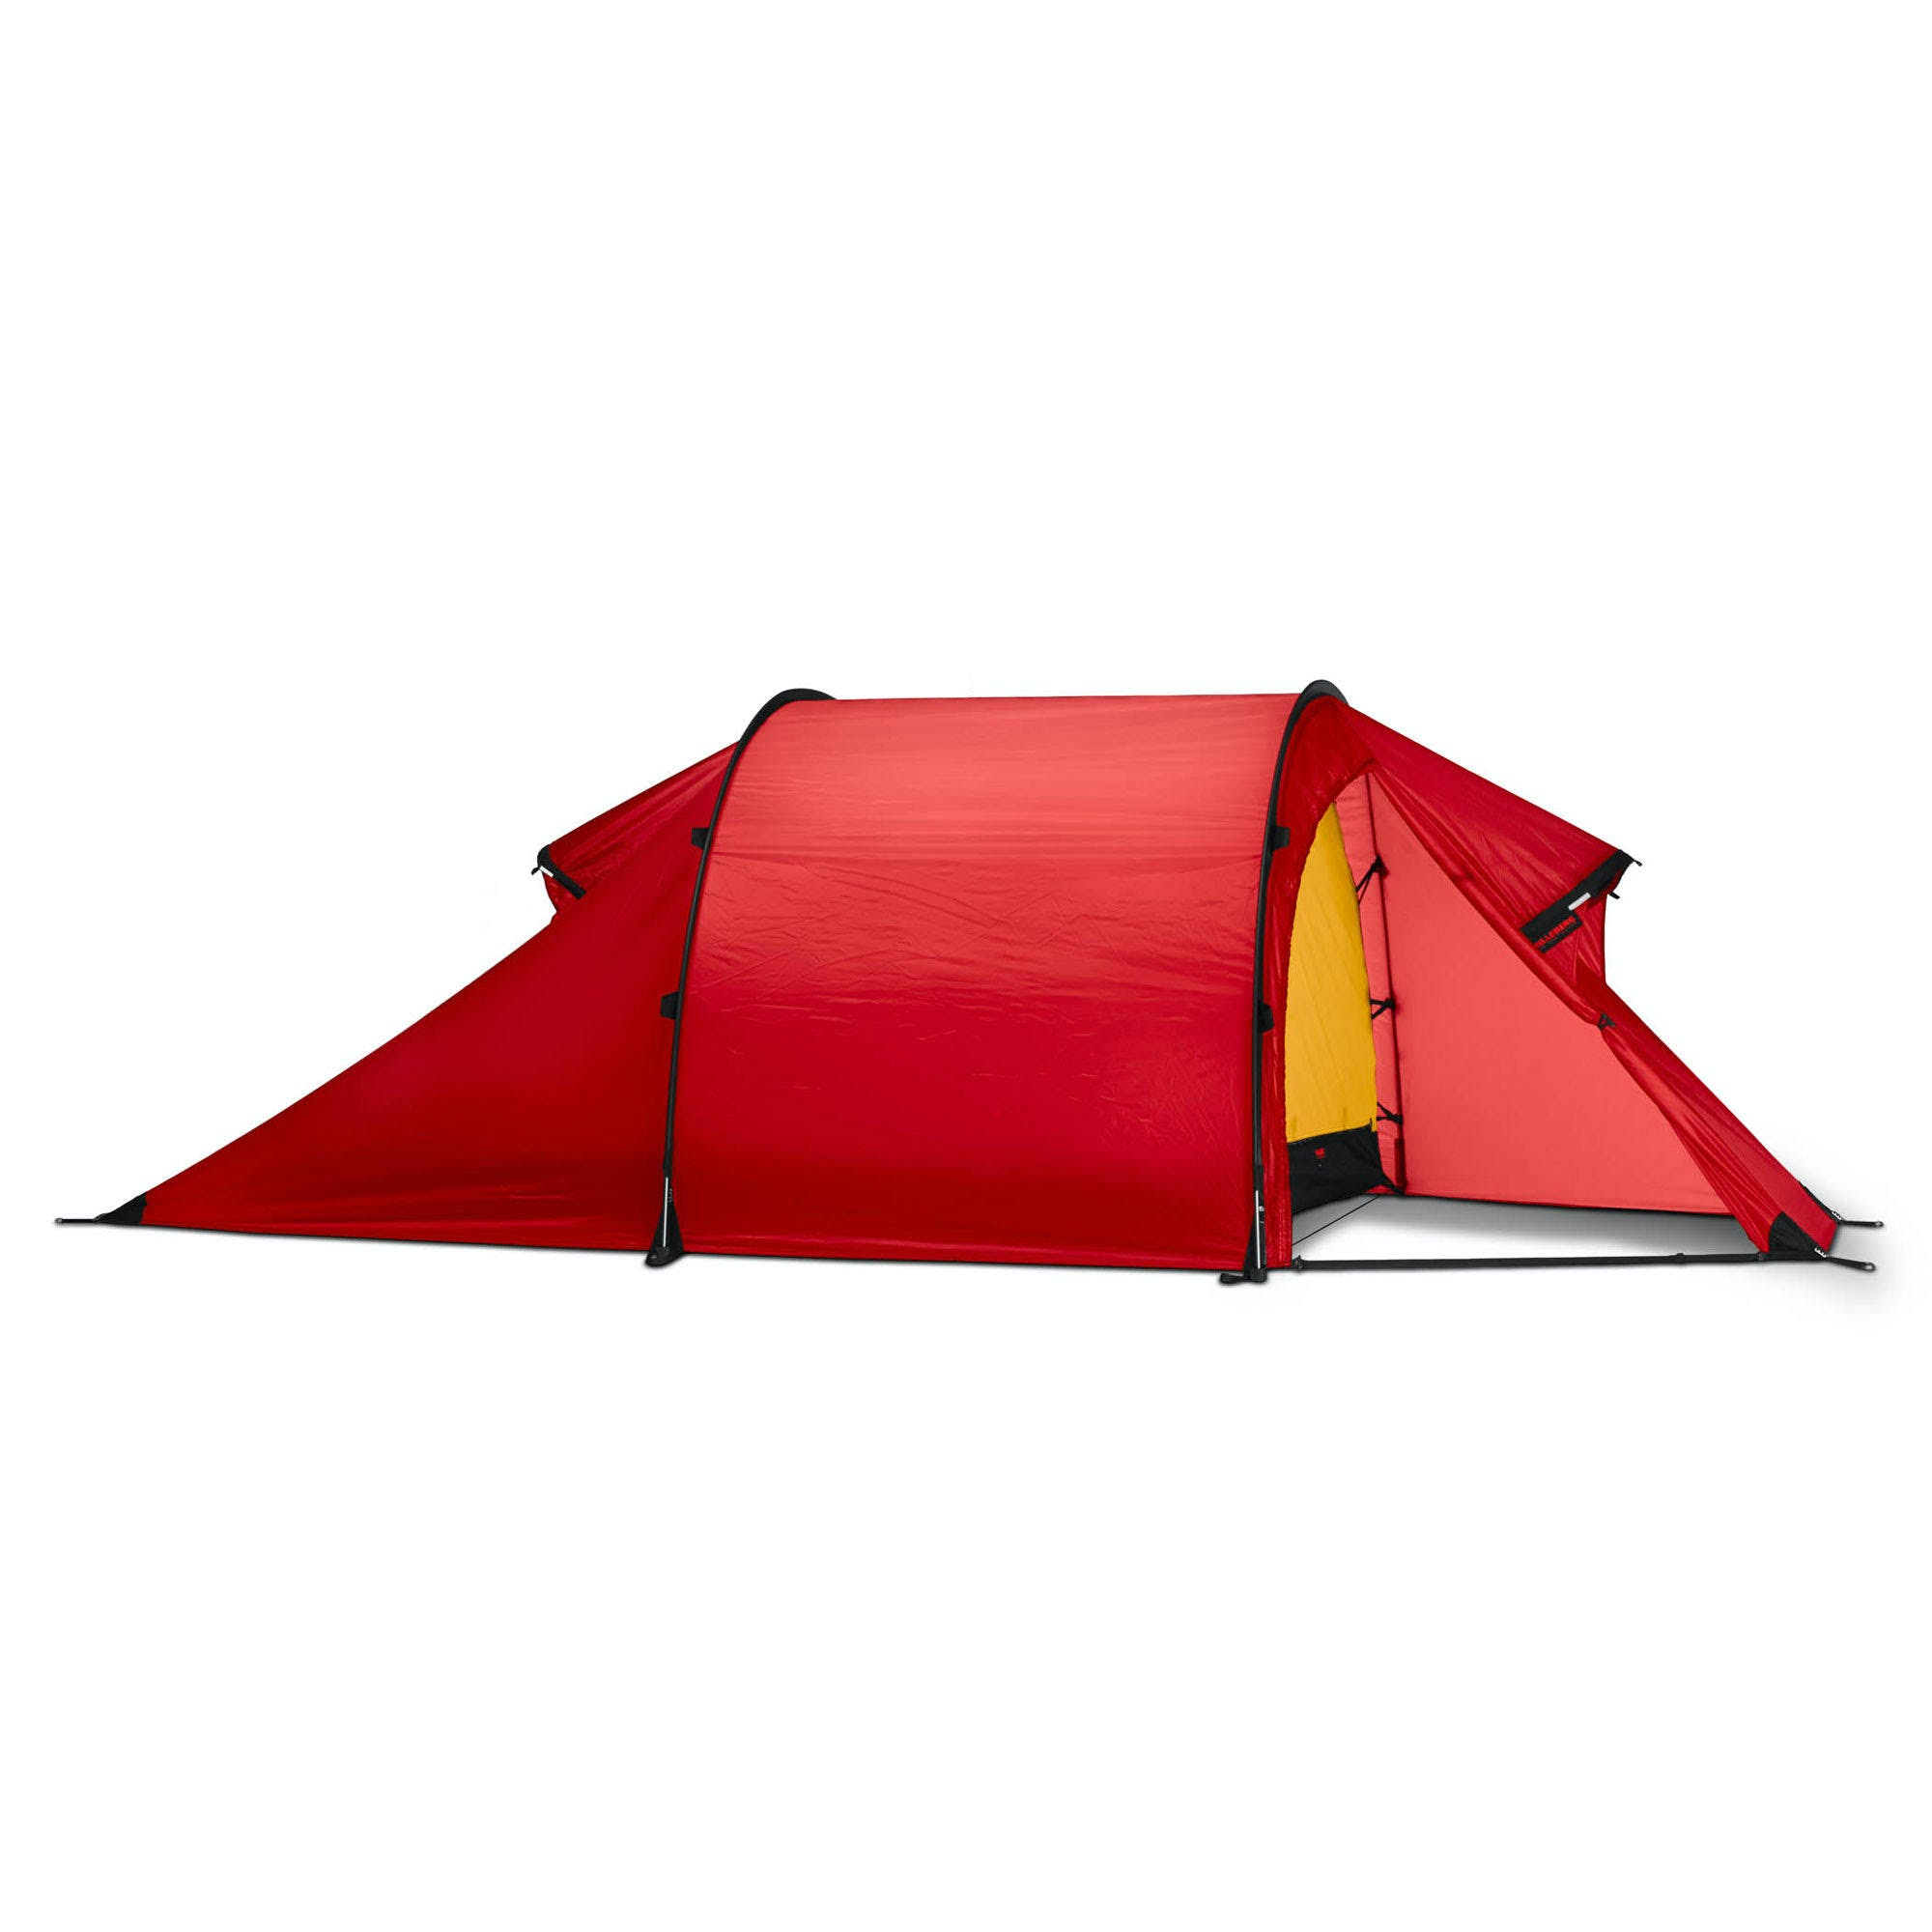 Hilleberg Nammatj 3 Person Tent Red